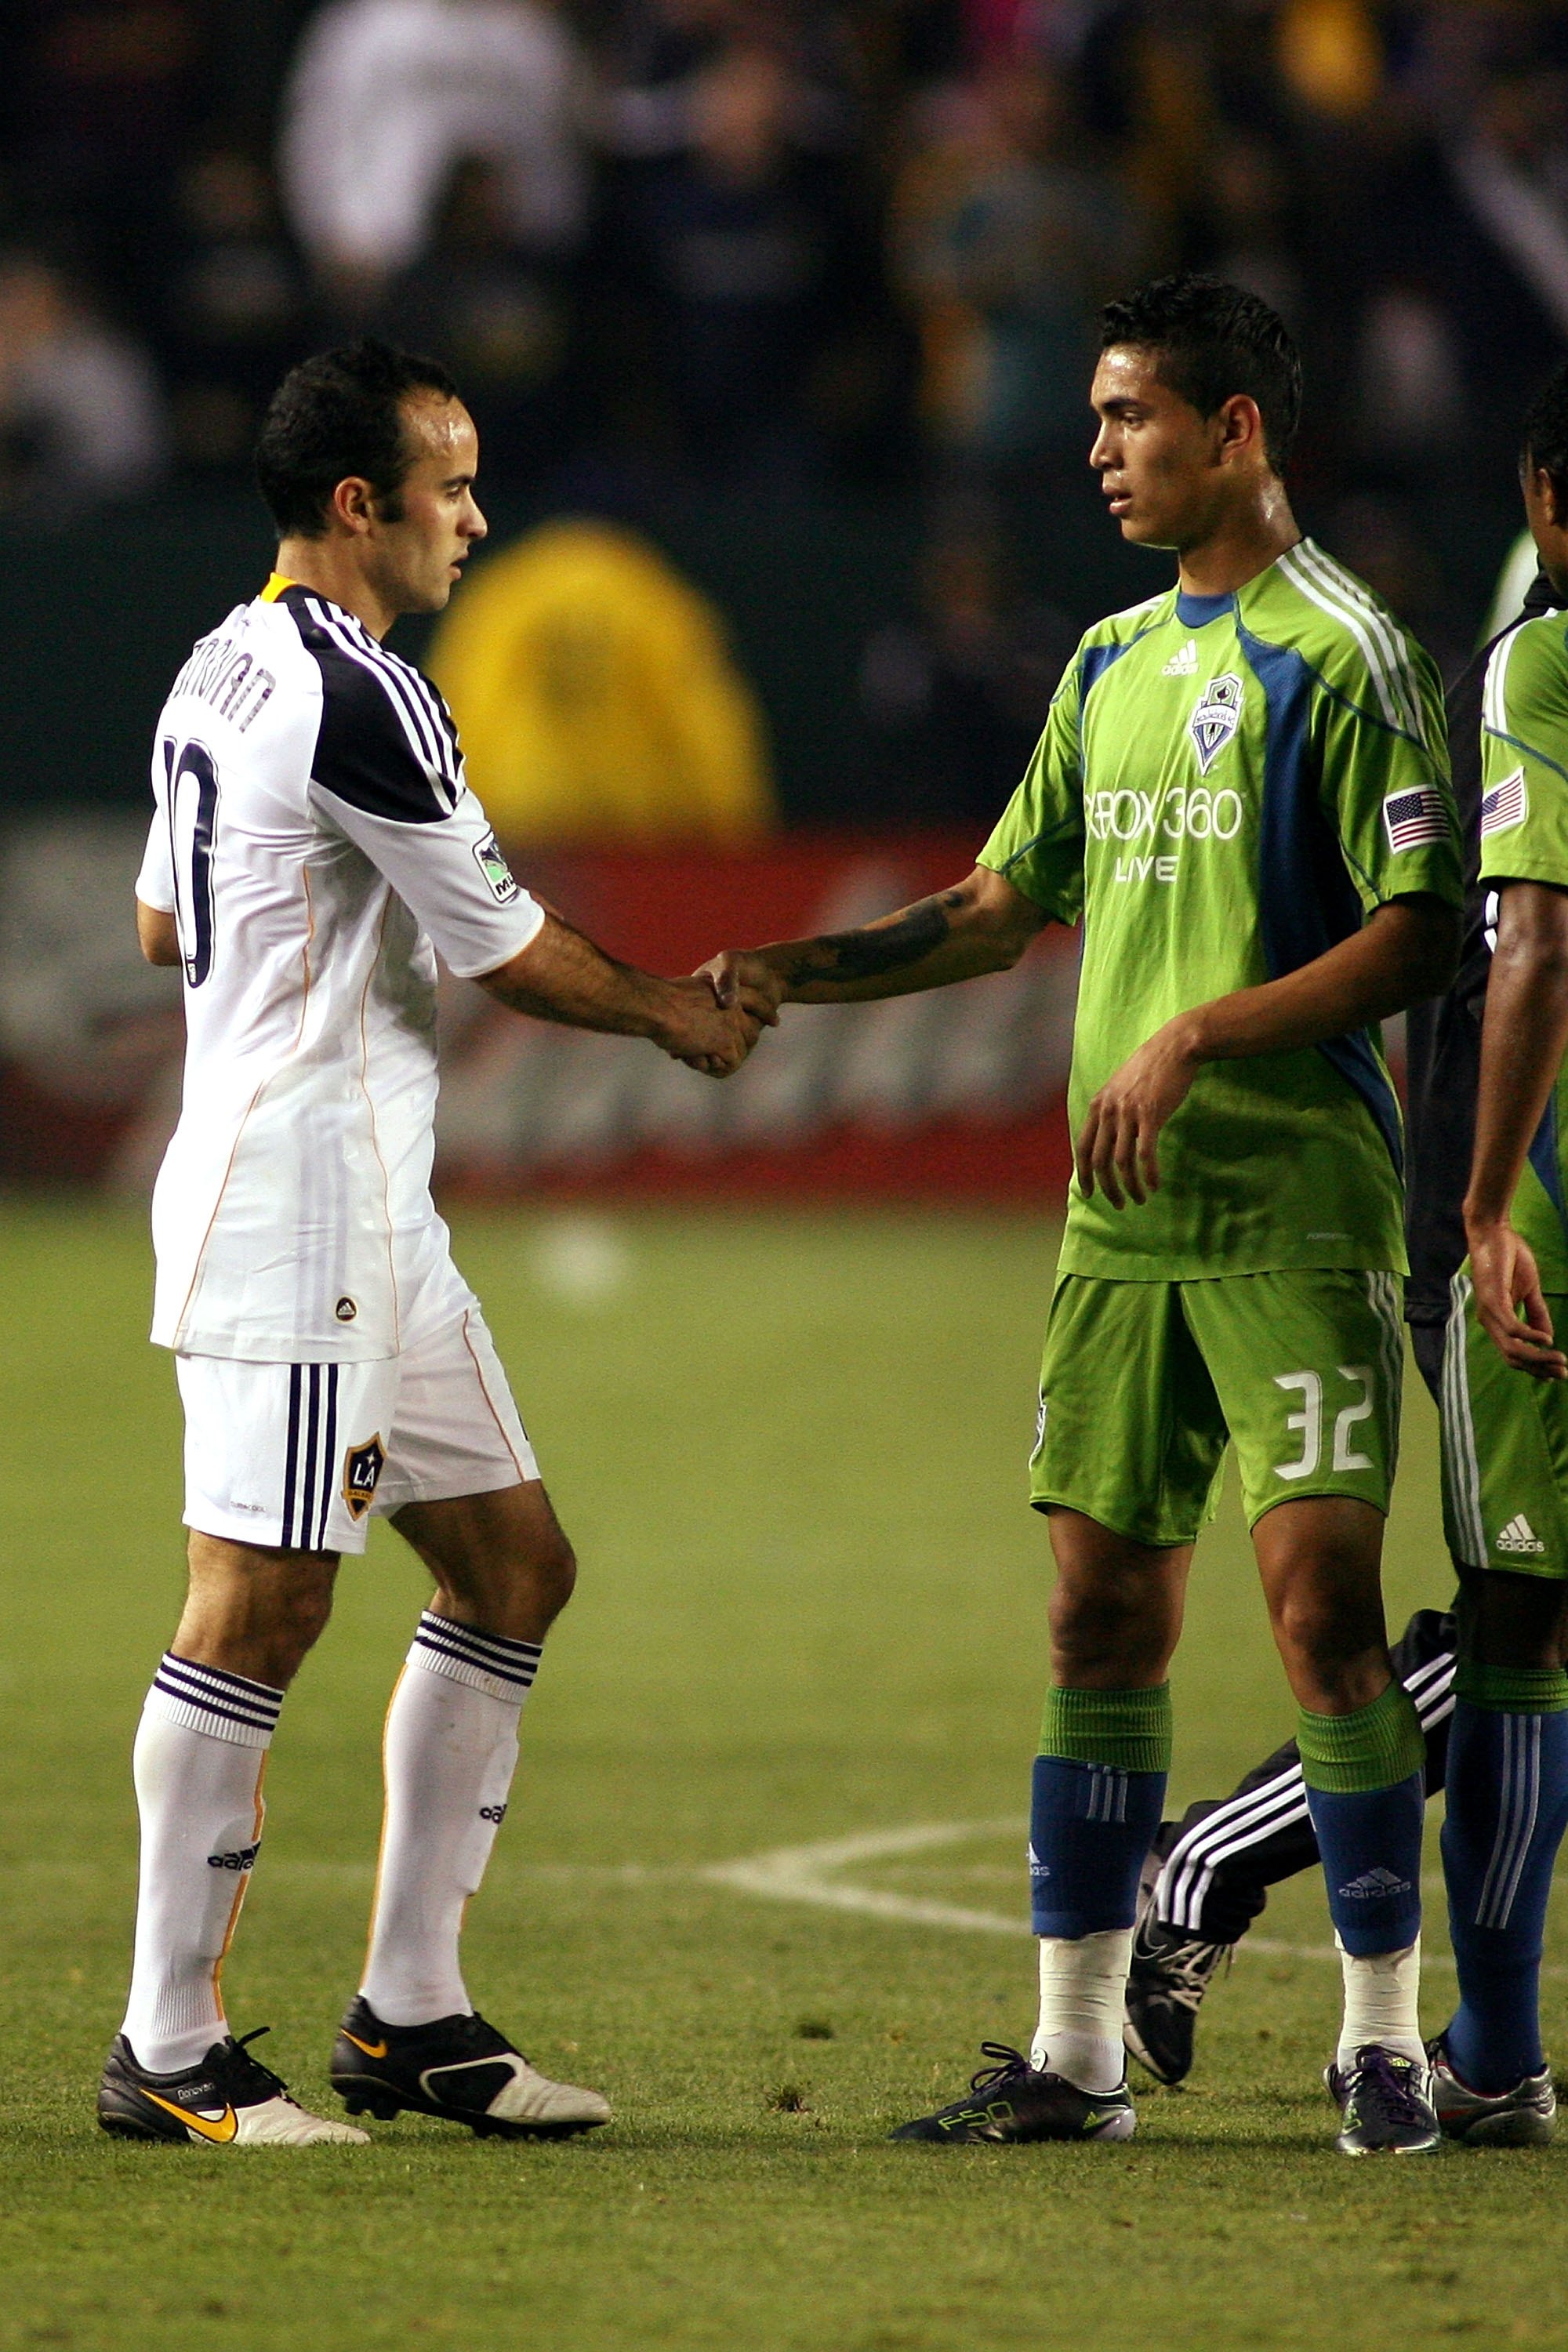 CARSON, CA - JULY 04:  Landon Donovan #10 of the Los Angeles Galaxy shakes hands with Miguel Montano #32 of the Seattle Sounders FC after the game on July 4, 2010 at the Home Depot Center in Carson, California.  Donovan was playing in his first MLS game s